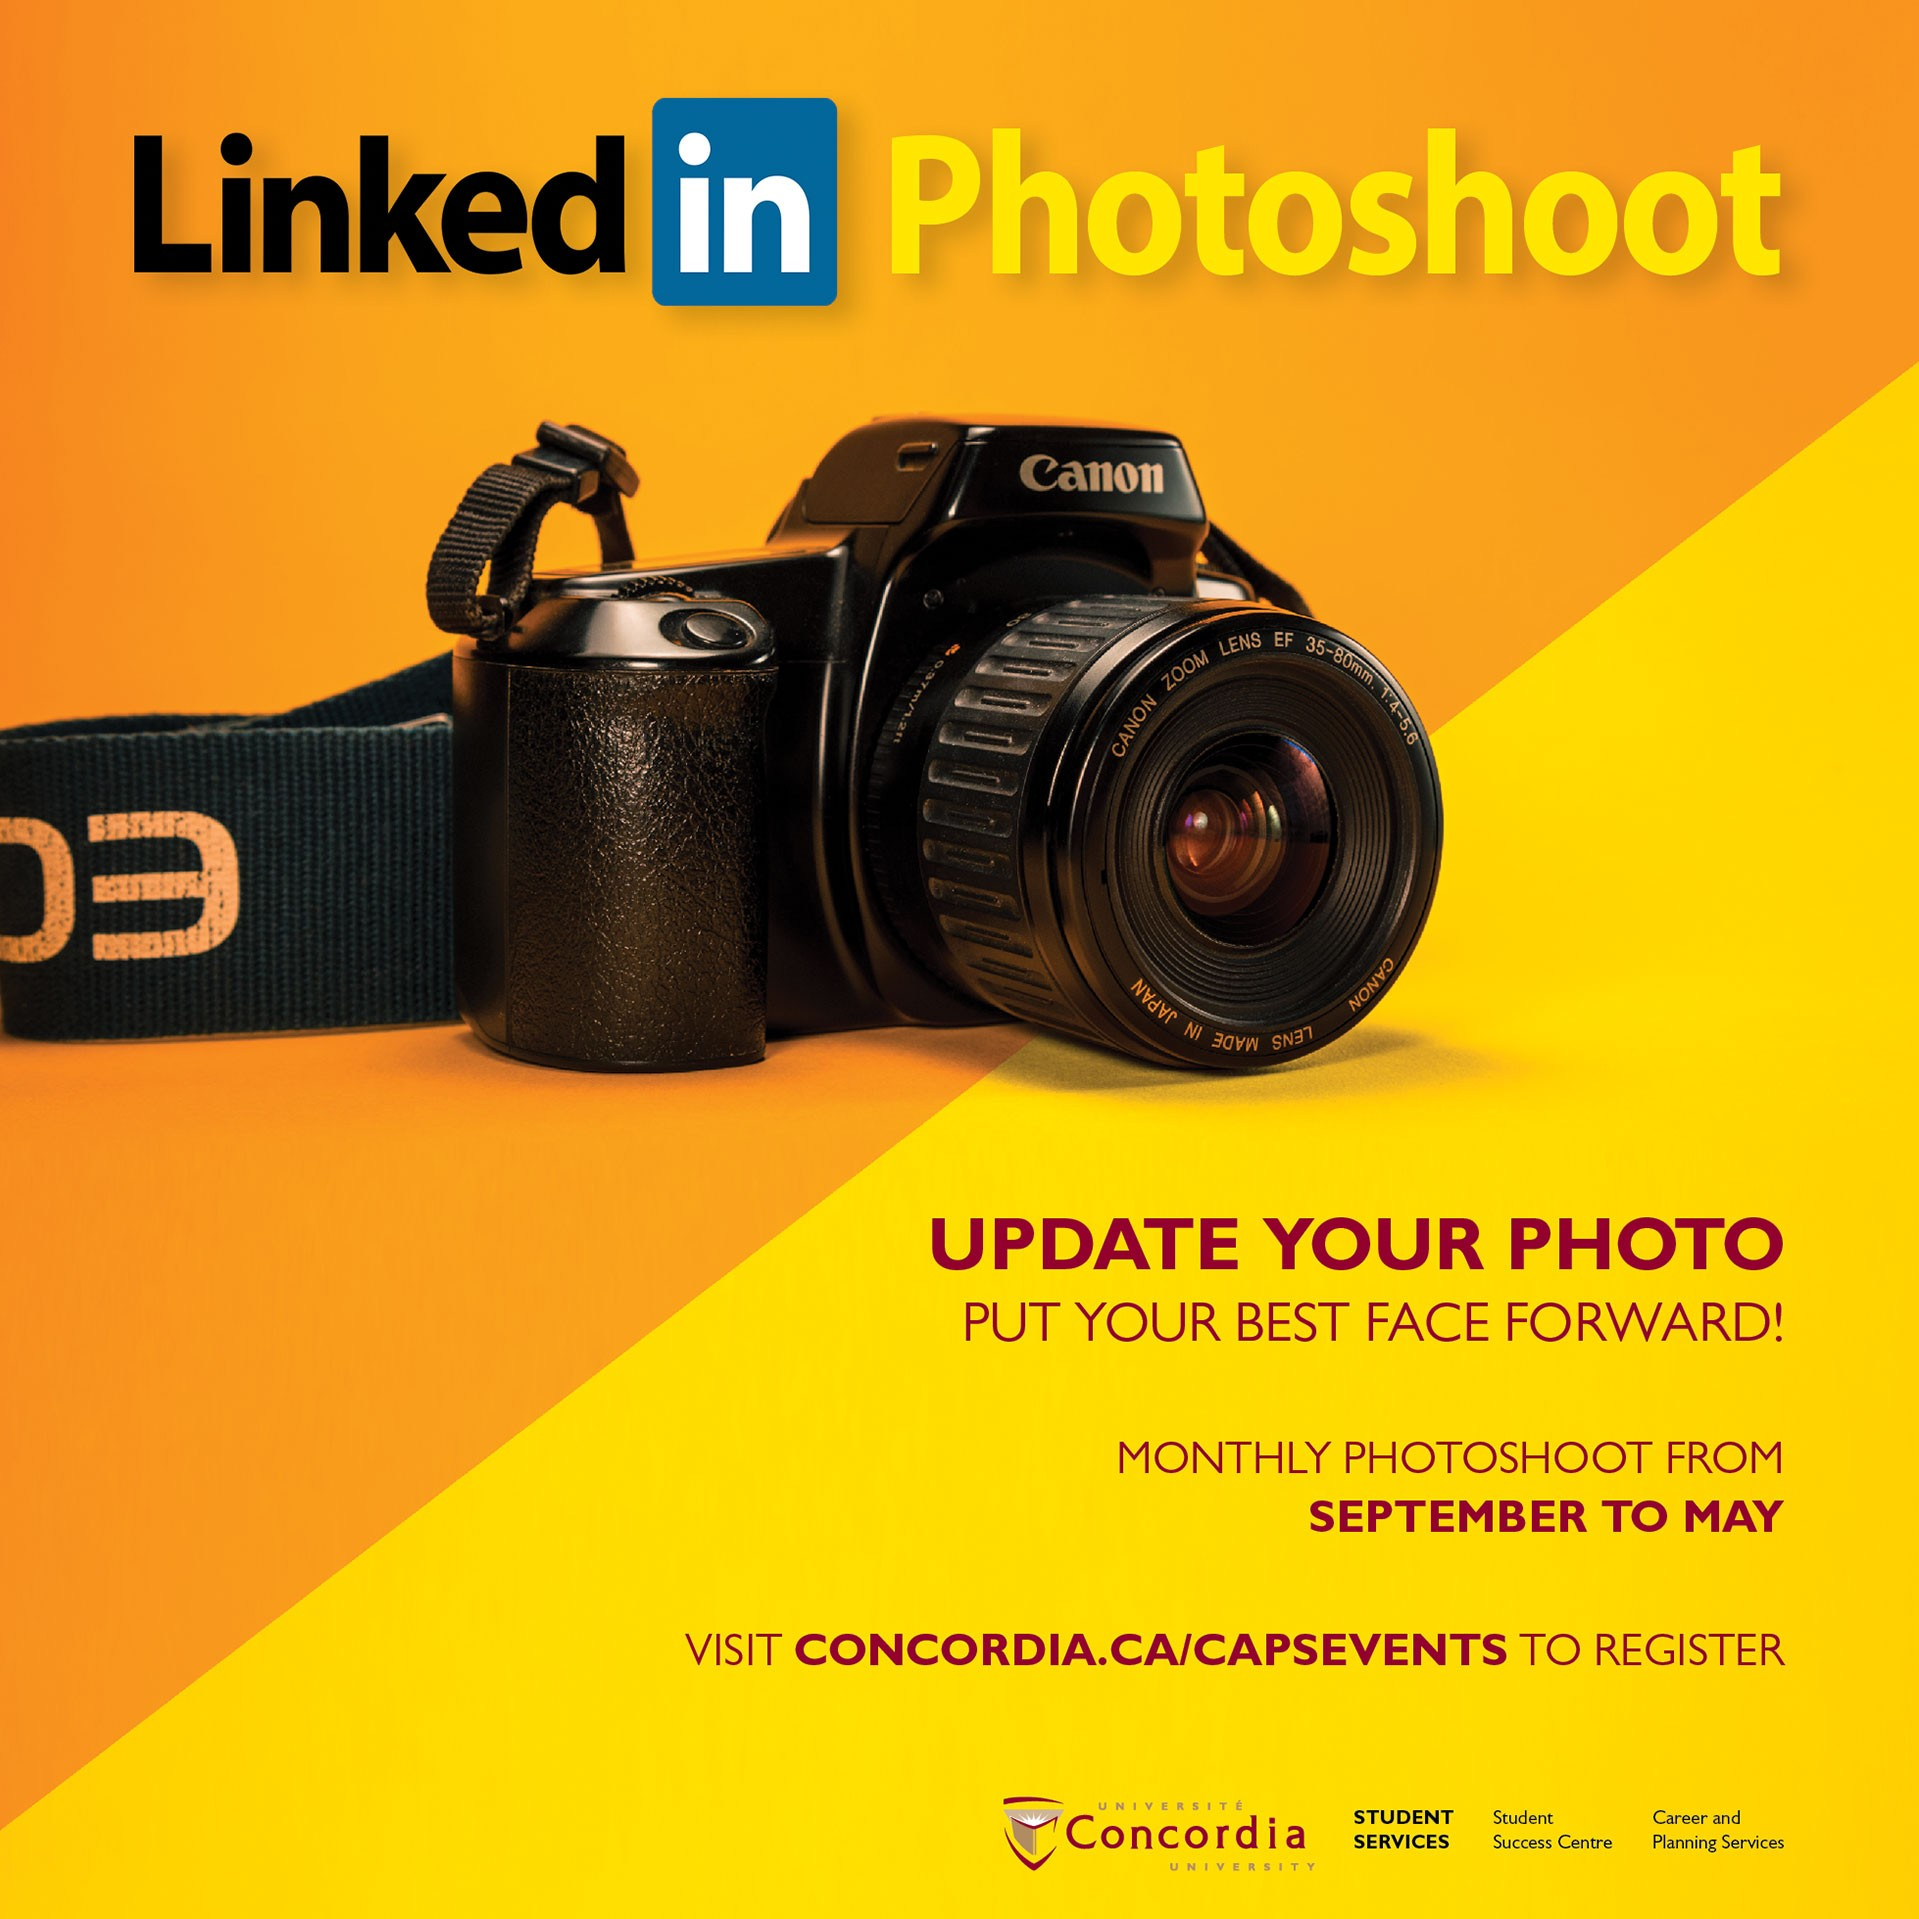 LinkedInPhotoshoot_fbPost_FINAL-web1